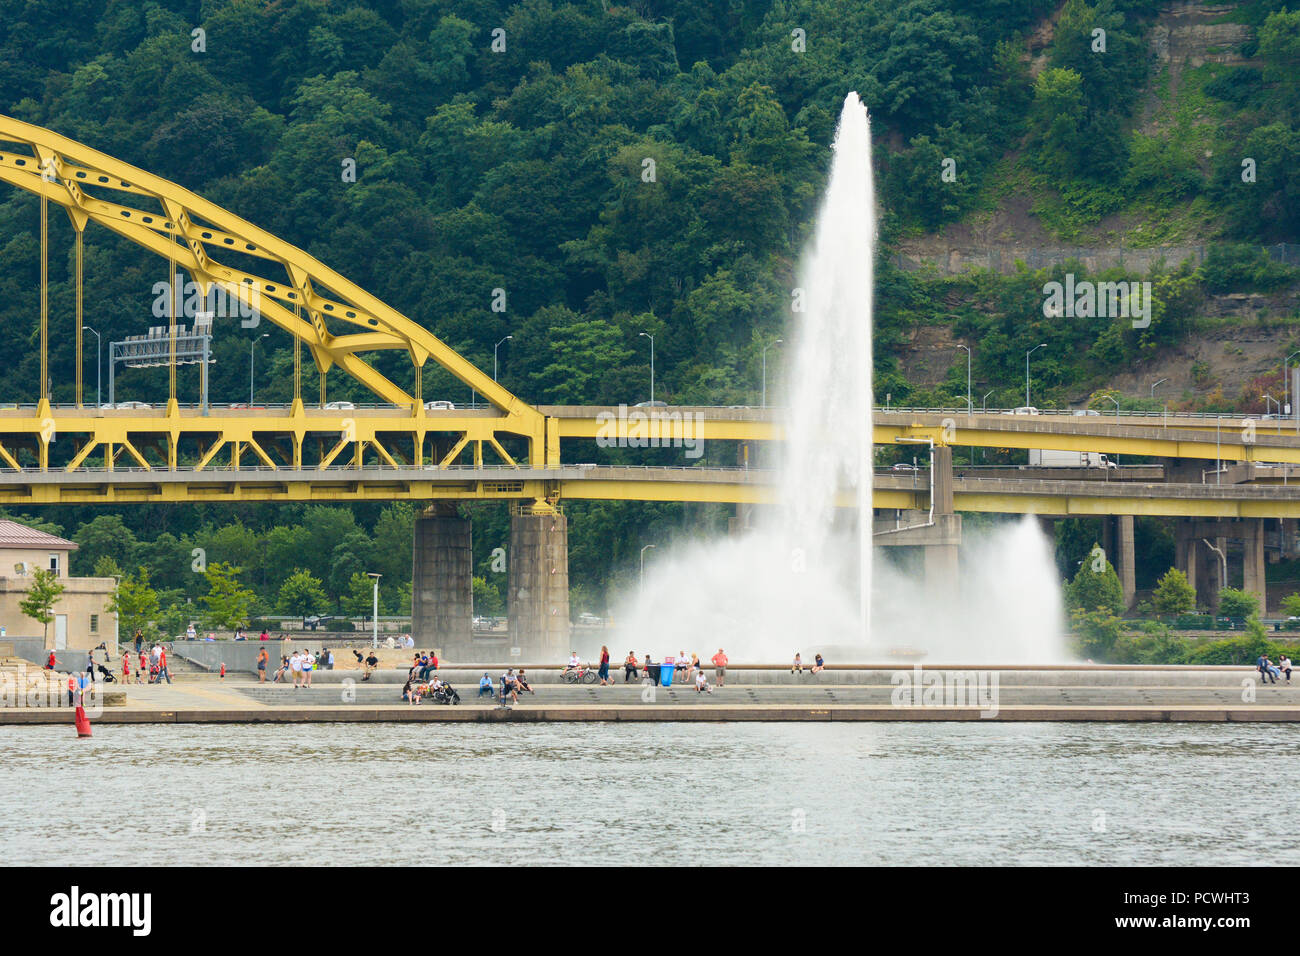 The fountain at Point State Park, Pittsburgh, Pennsylvania, sits at the confluence of the Allegheny, the Monongahela, and the Ohio Rivers. Stock Photo